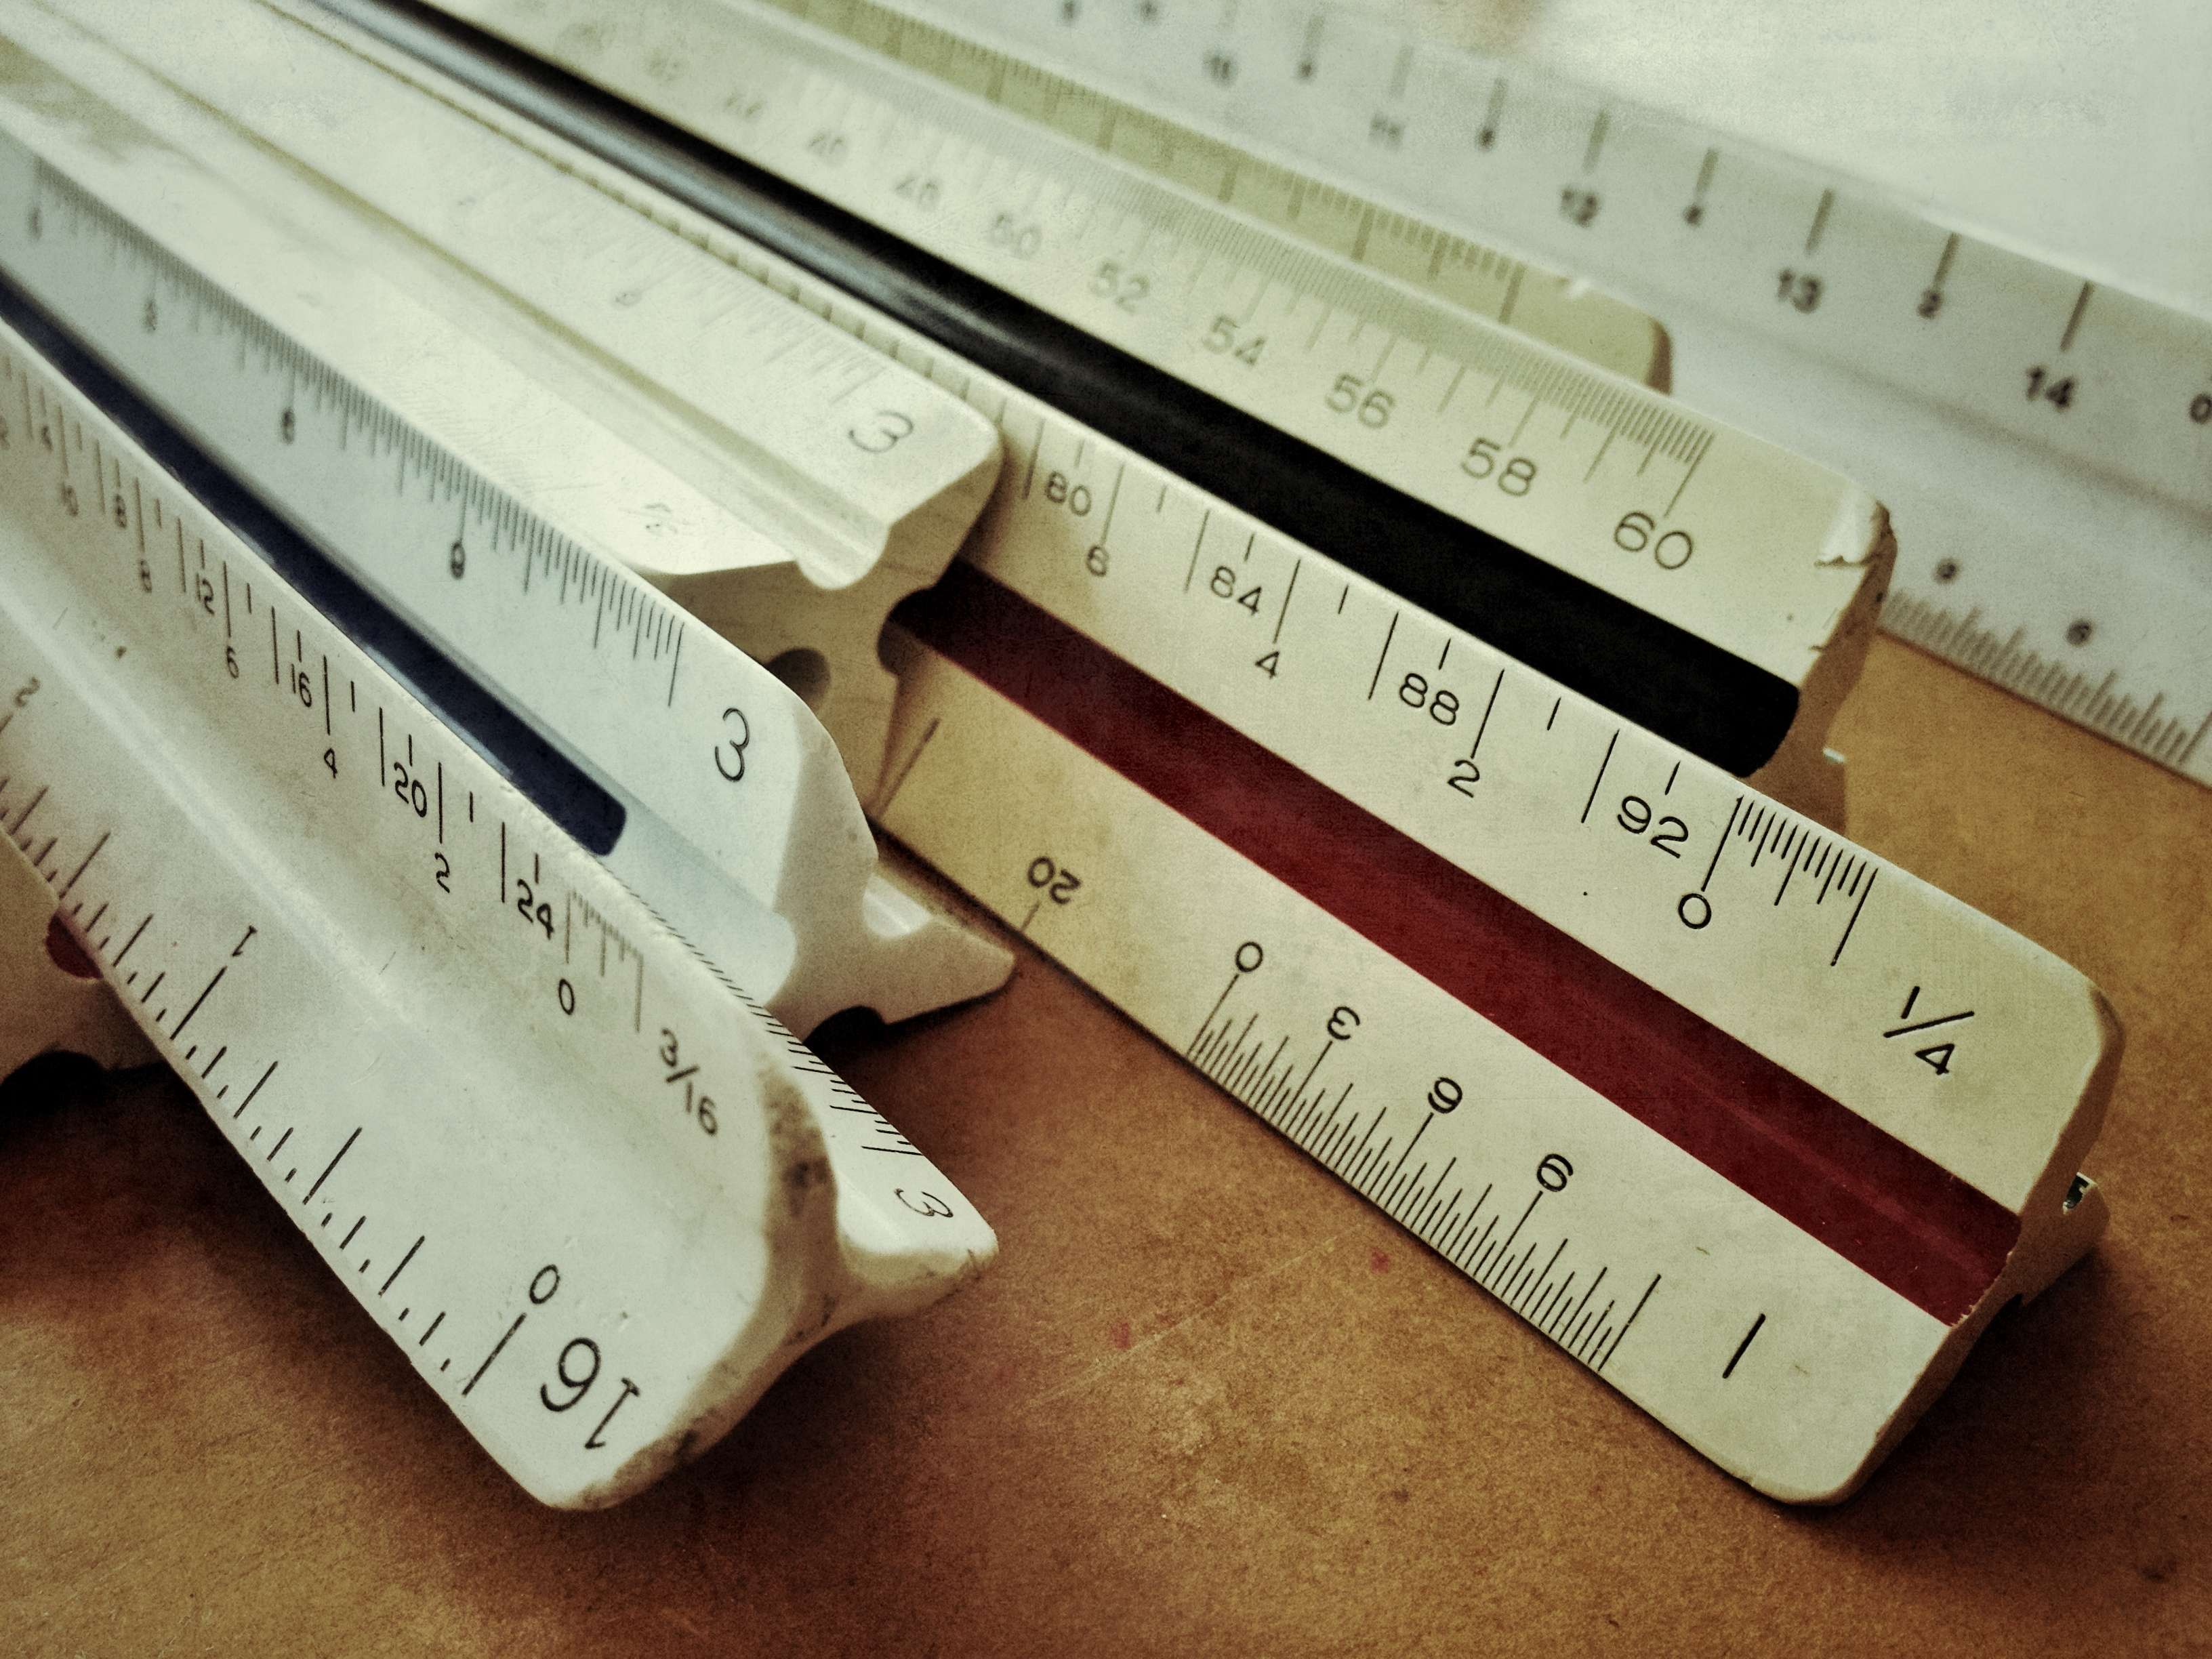 Architect And Engineering Scales